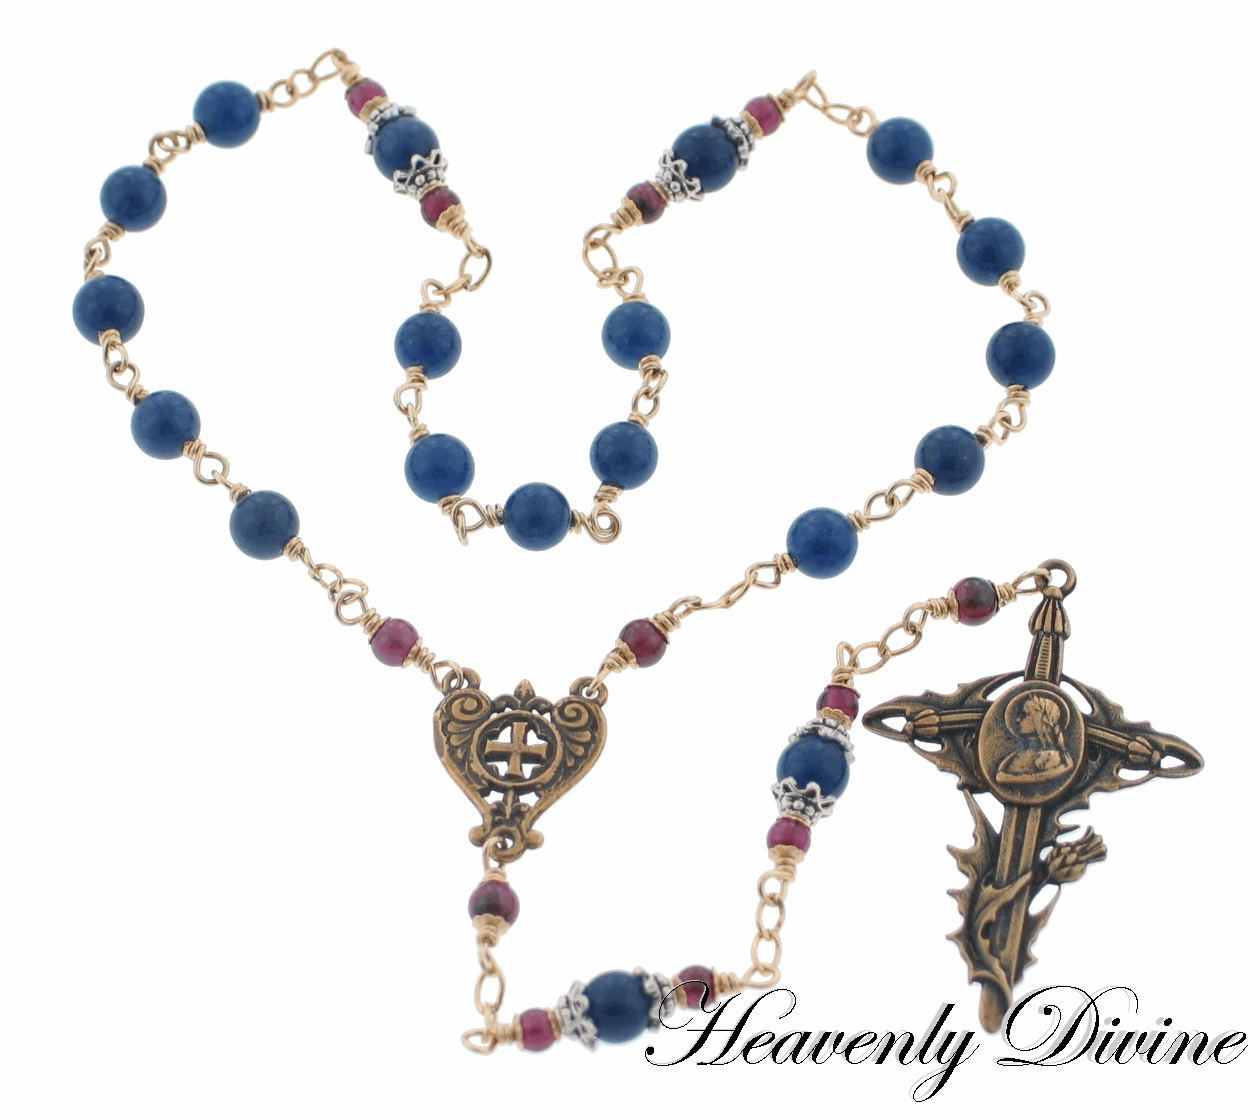 Handmade Wire-Wrapped Saint Joan of Arc Chaplet by Heavenly Divine